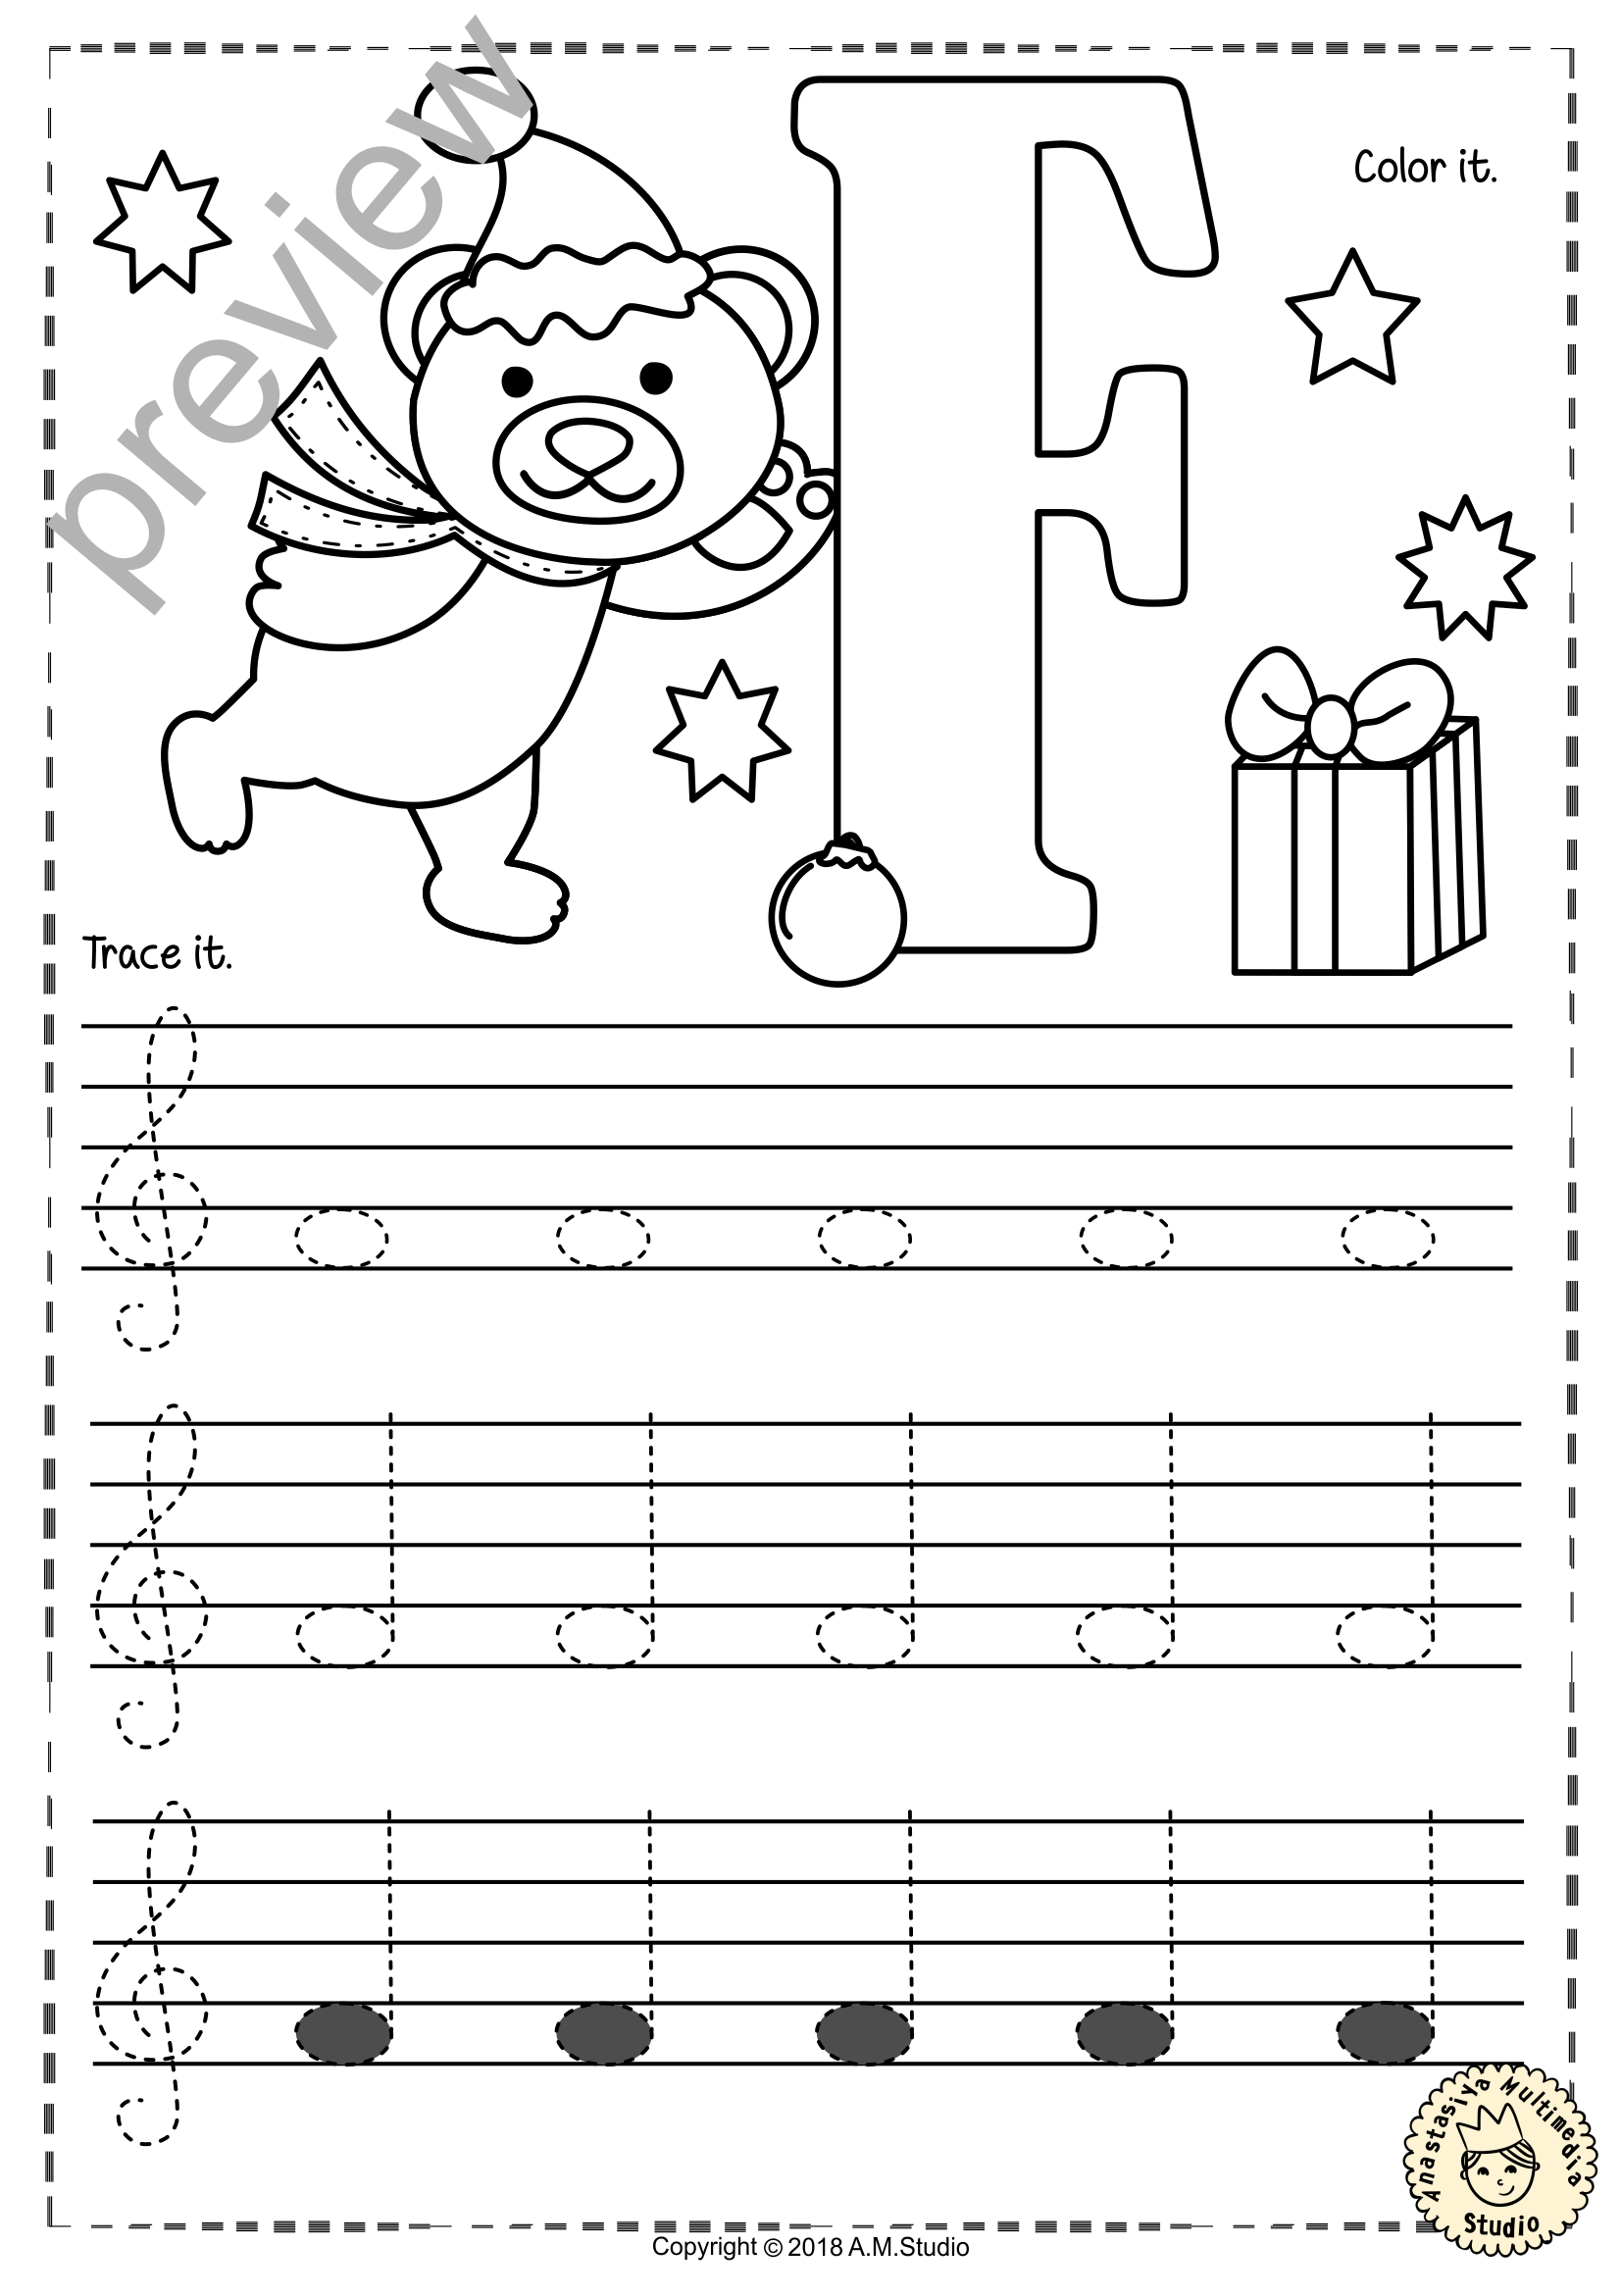 Treble Clef Tracing Music Notes Worksheets For Winter And